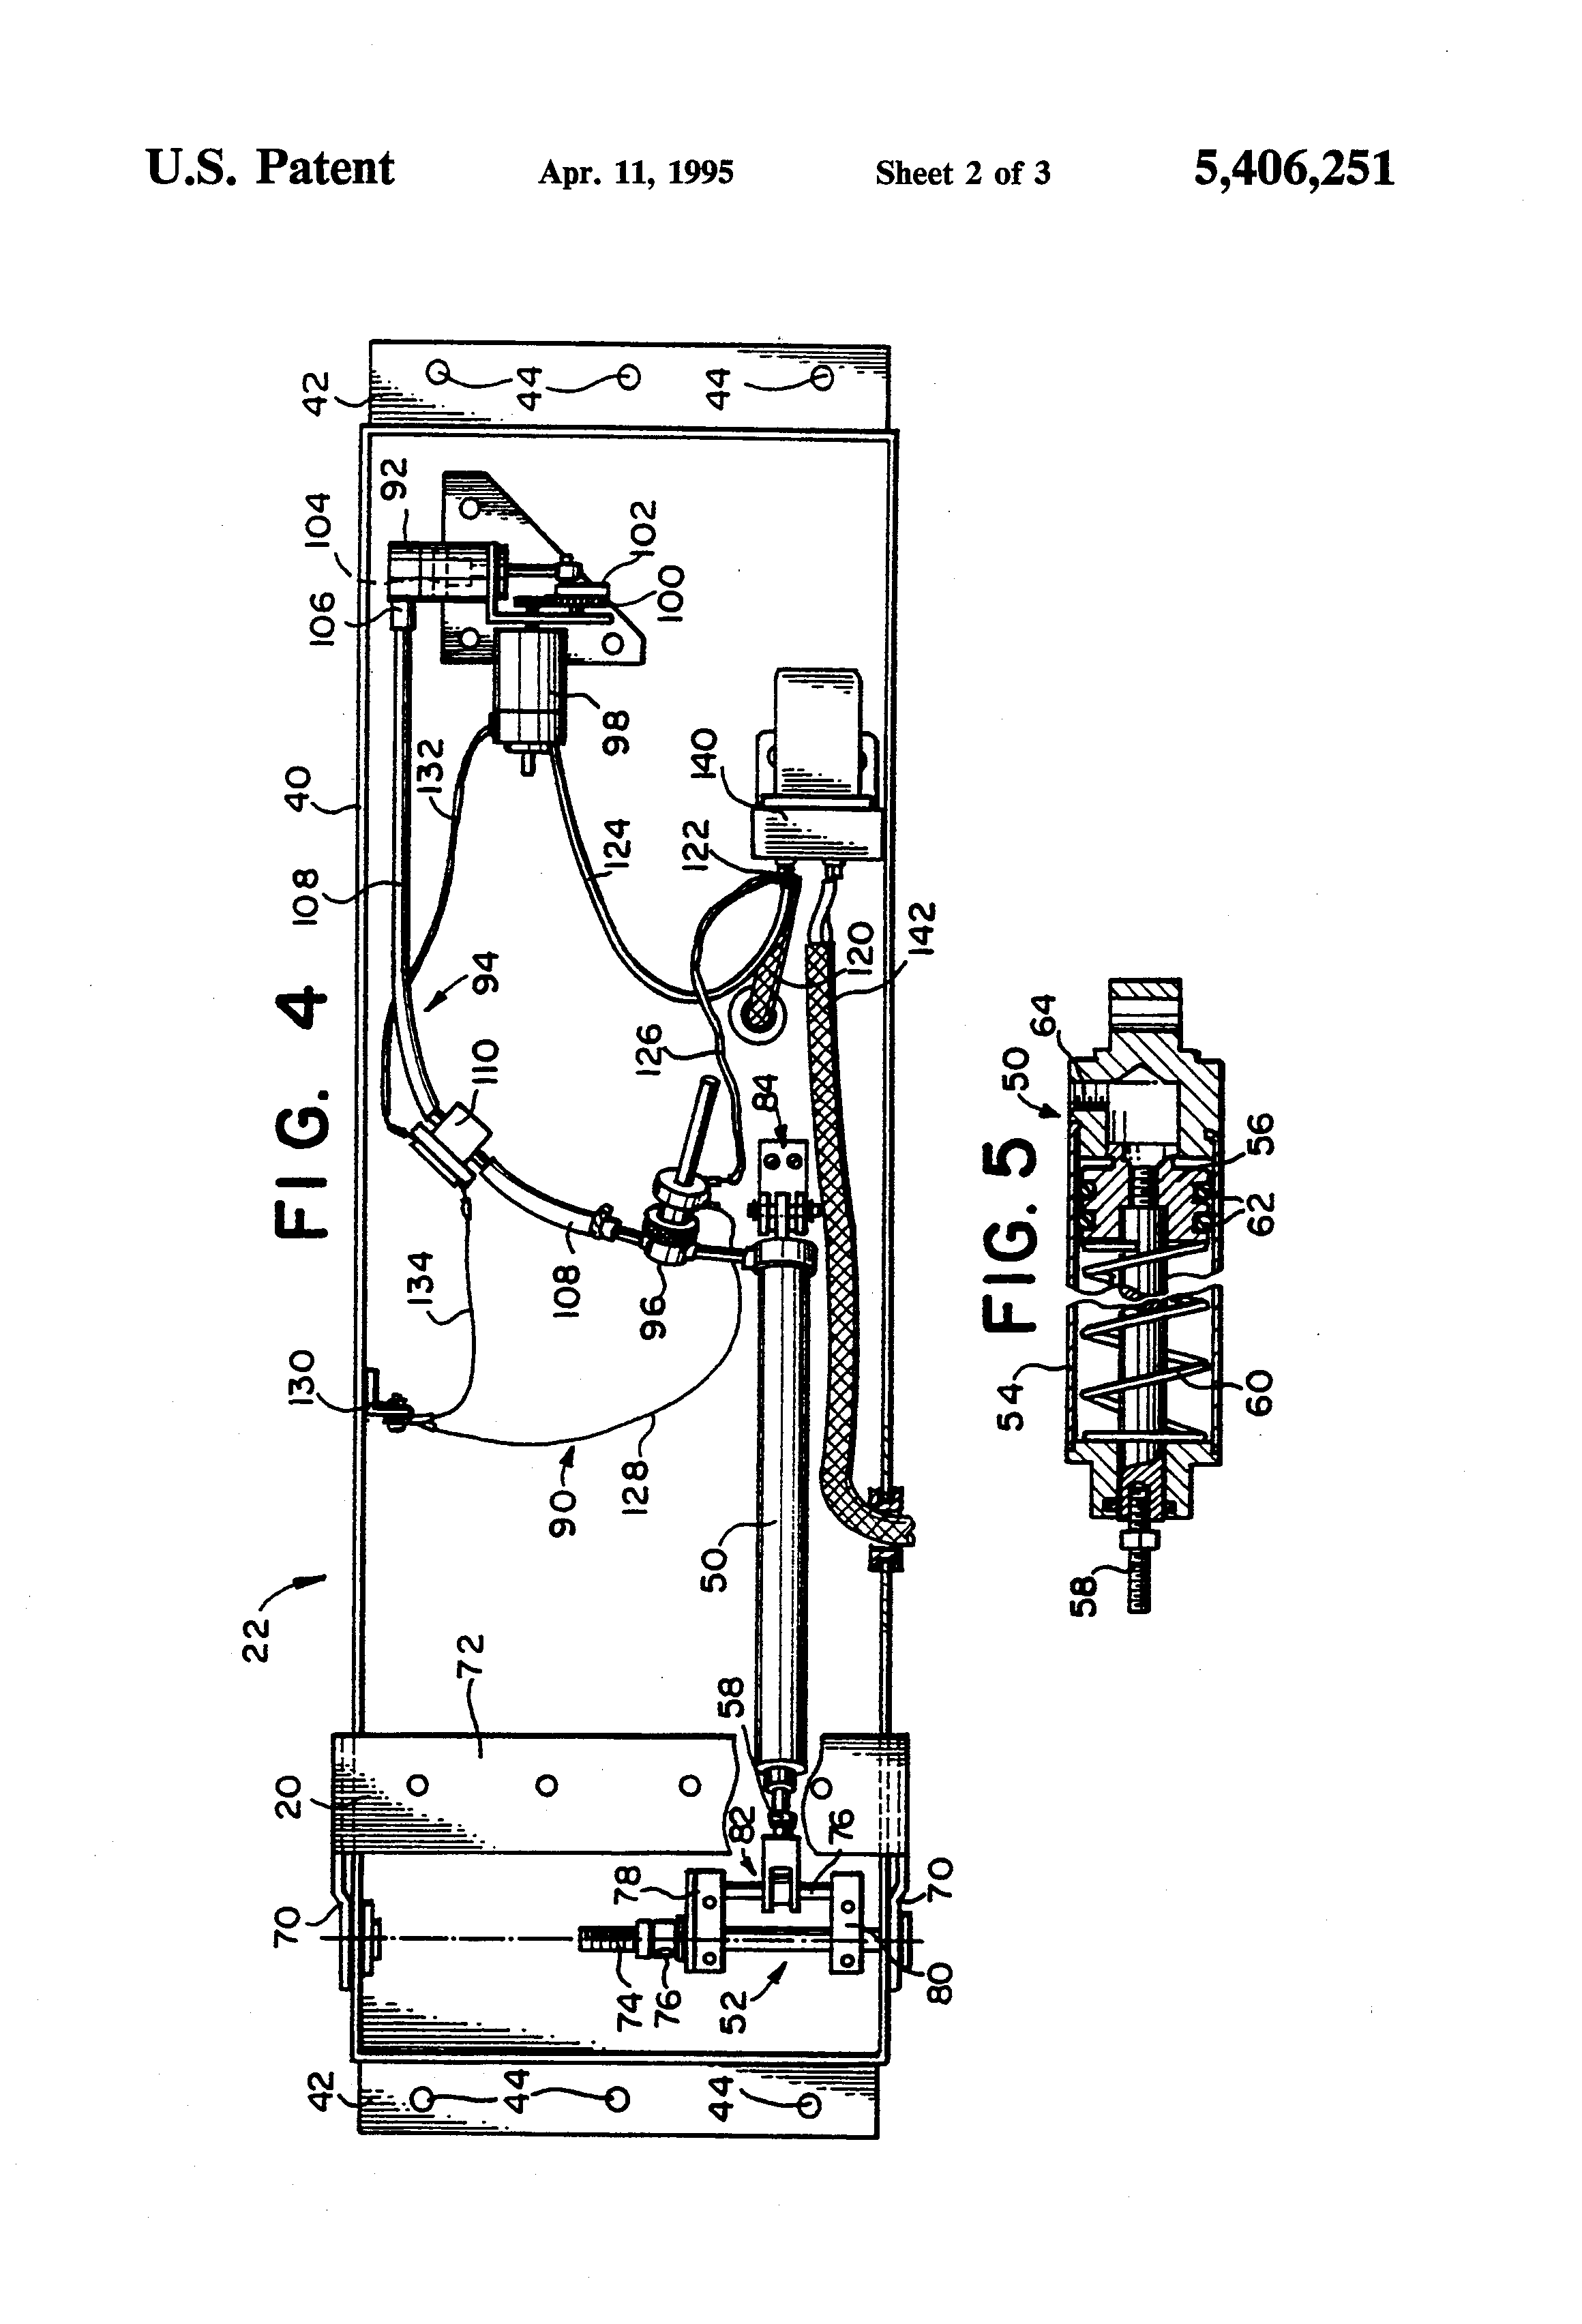 transpec wiring diagram for sign detailed wiring diagrams transpec wiring diagram for sign completed wiring diagrams wiring diagram 2004 ranger c che patent us5406251 air